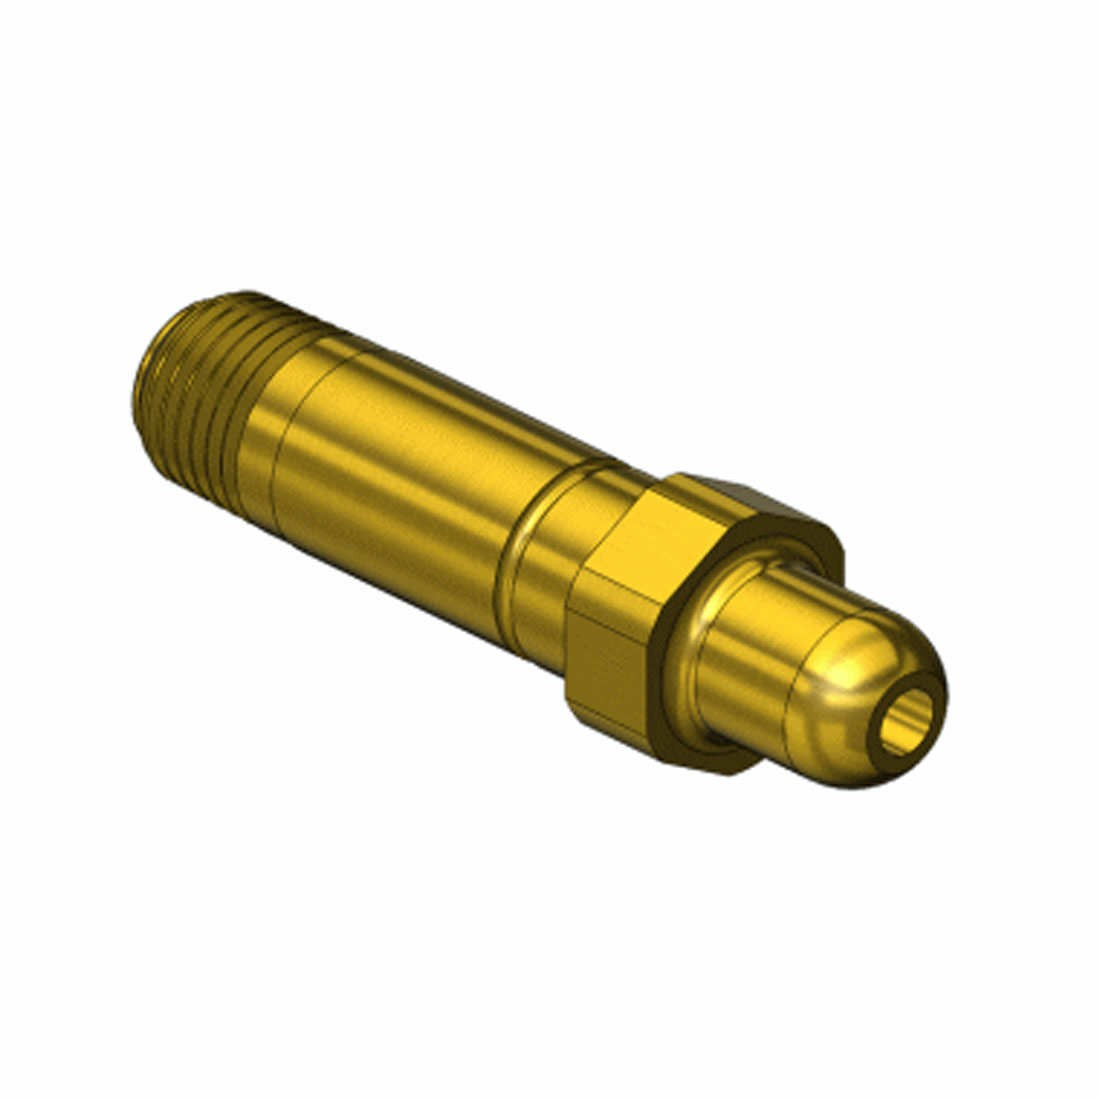 Nipple - 1/4 NPT 2-1/2 in. long - Brass